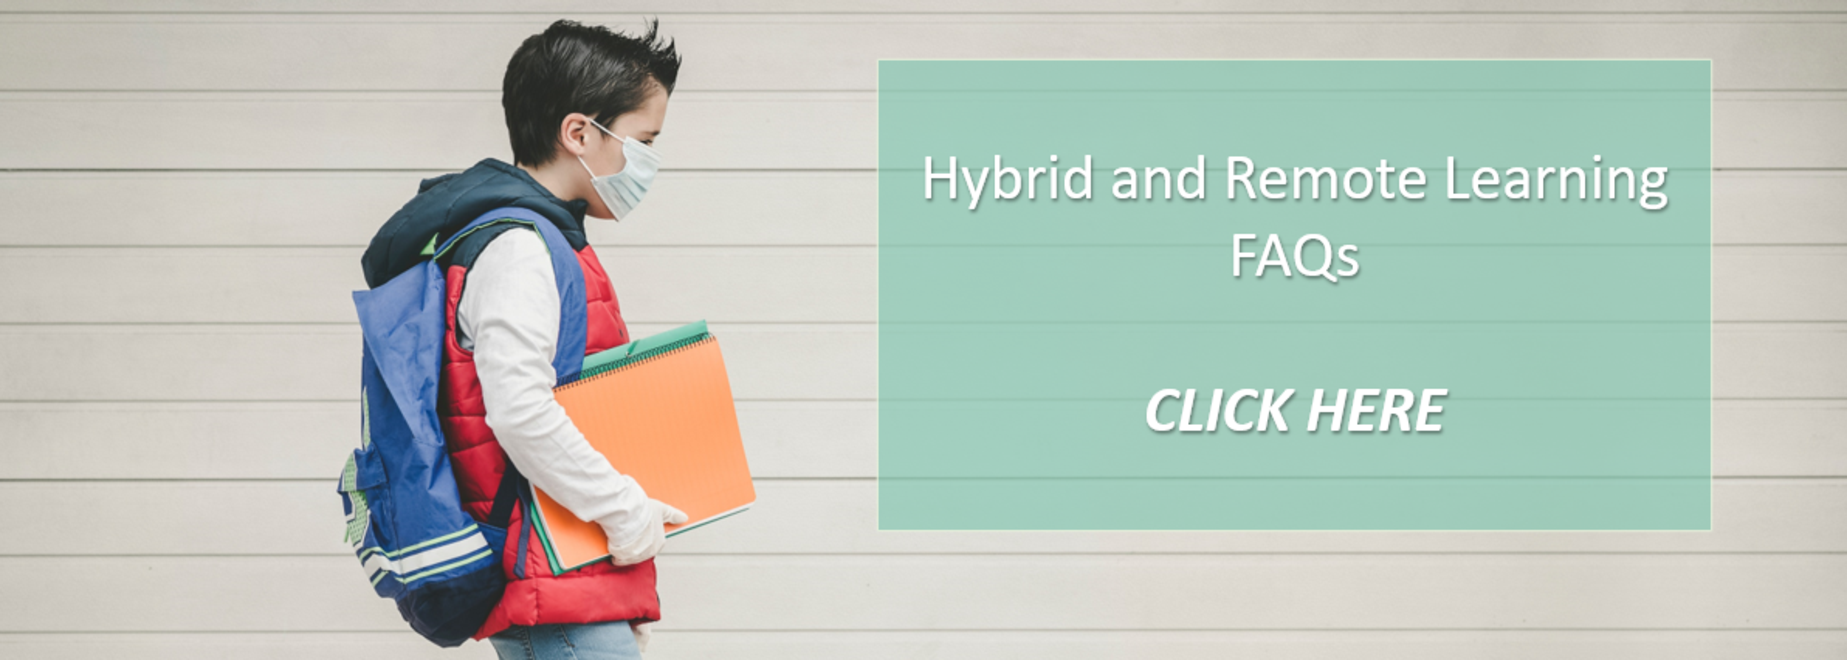 For Hybrid and Remote learning information, click here!